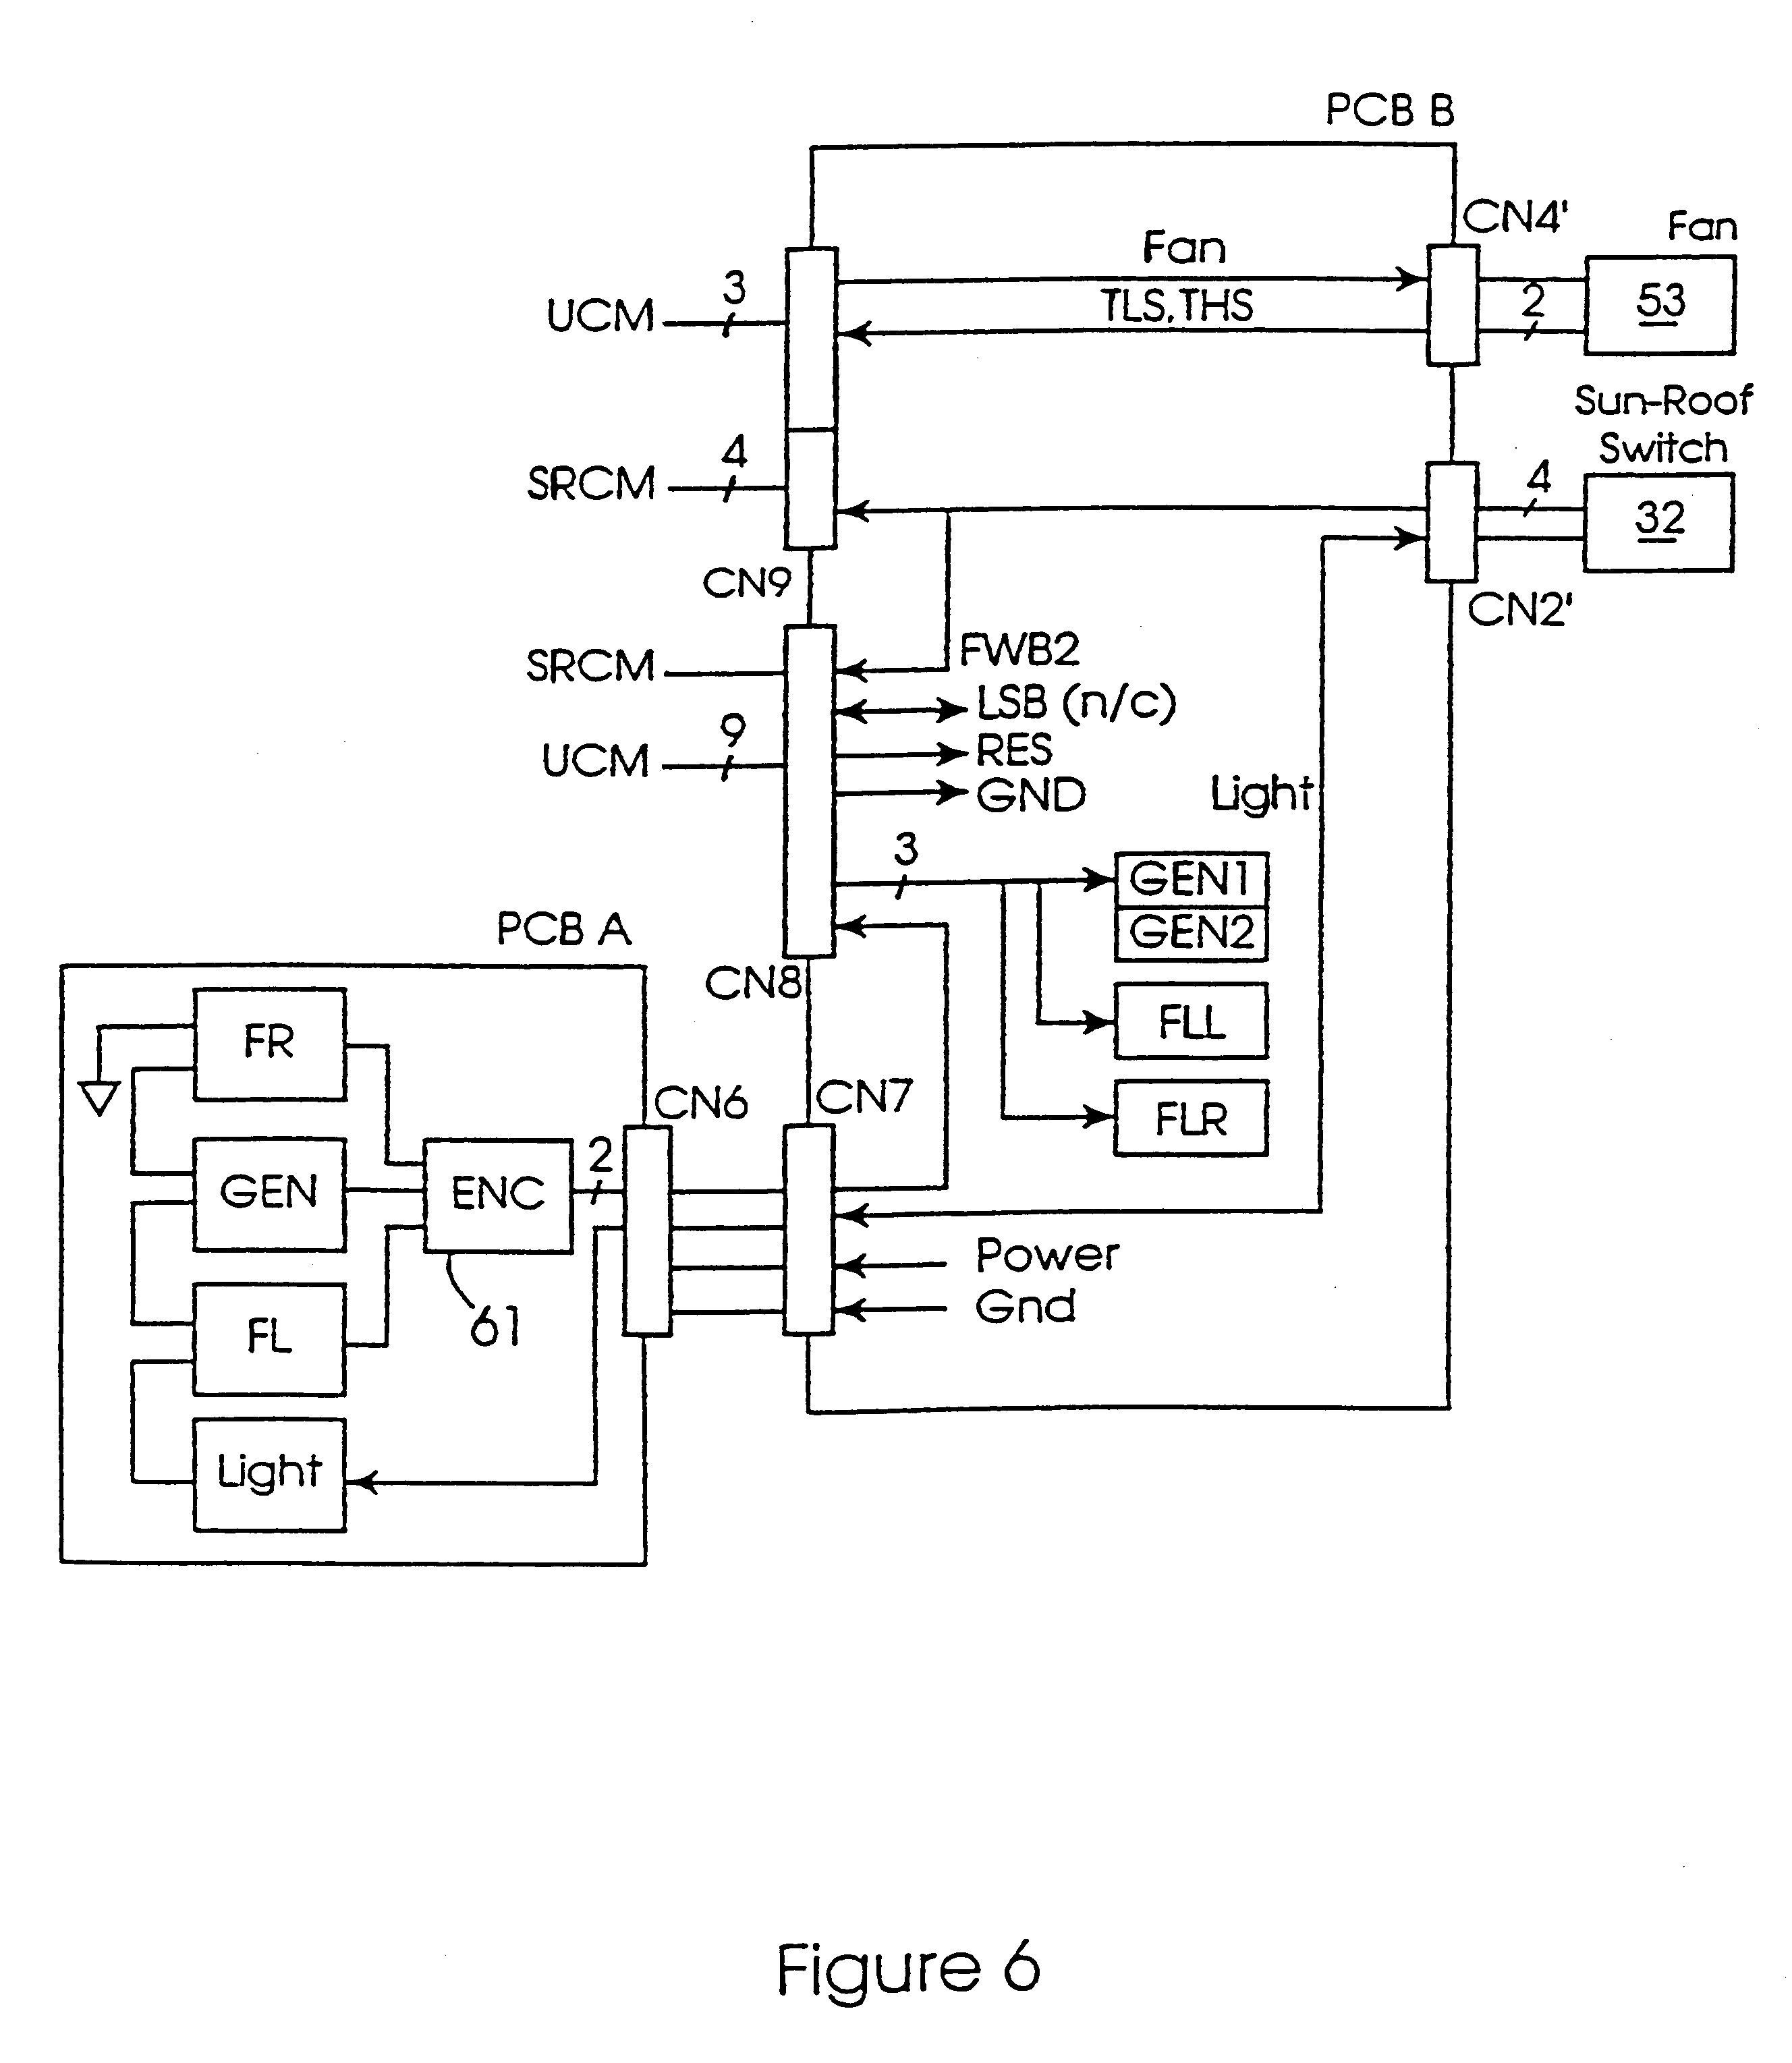 velvac mirror wiring diagram Download-donnelly mirror wiring diagram donnelly rear view mirror wiring rh ladan pw velvac mirror wiring diagram velvac mirror wiring diagram 9-o